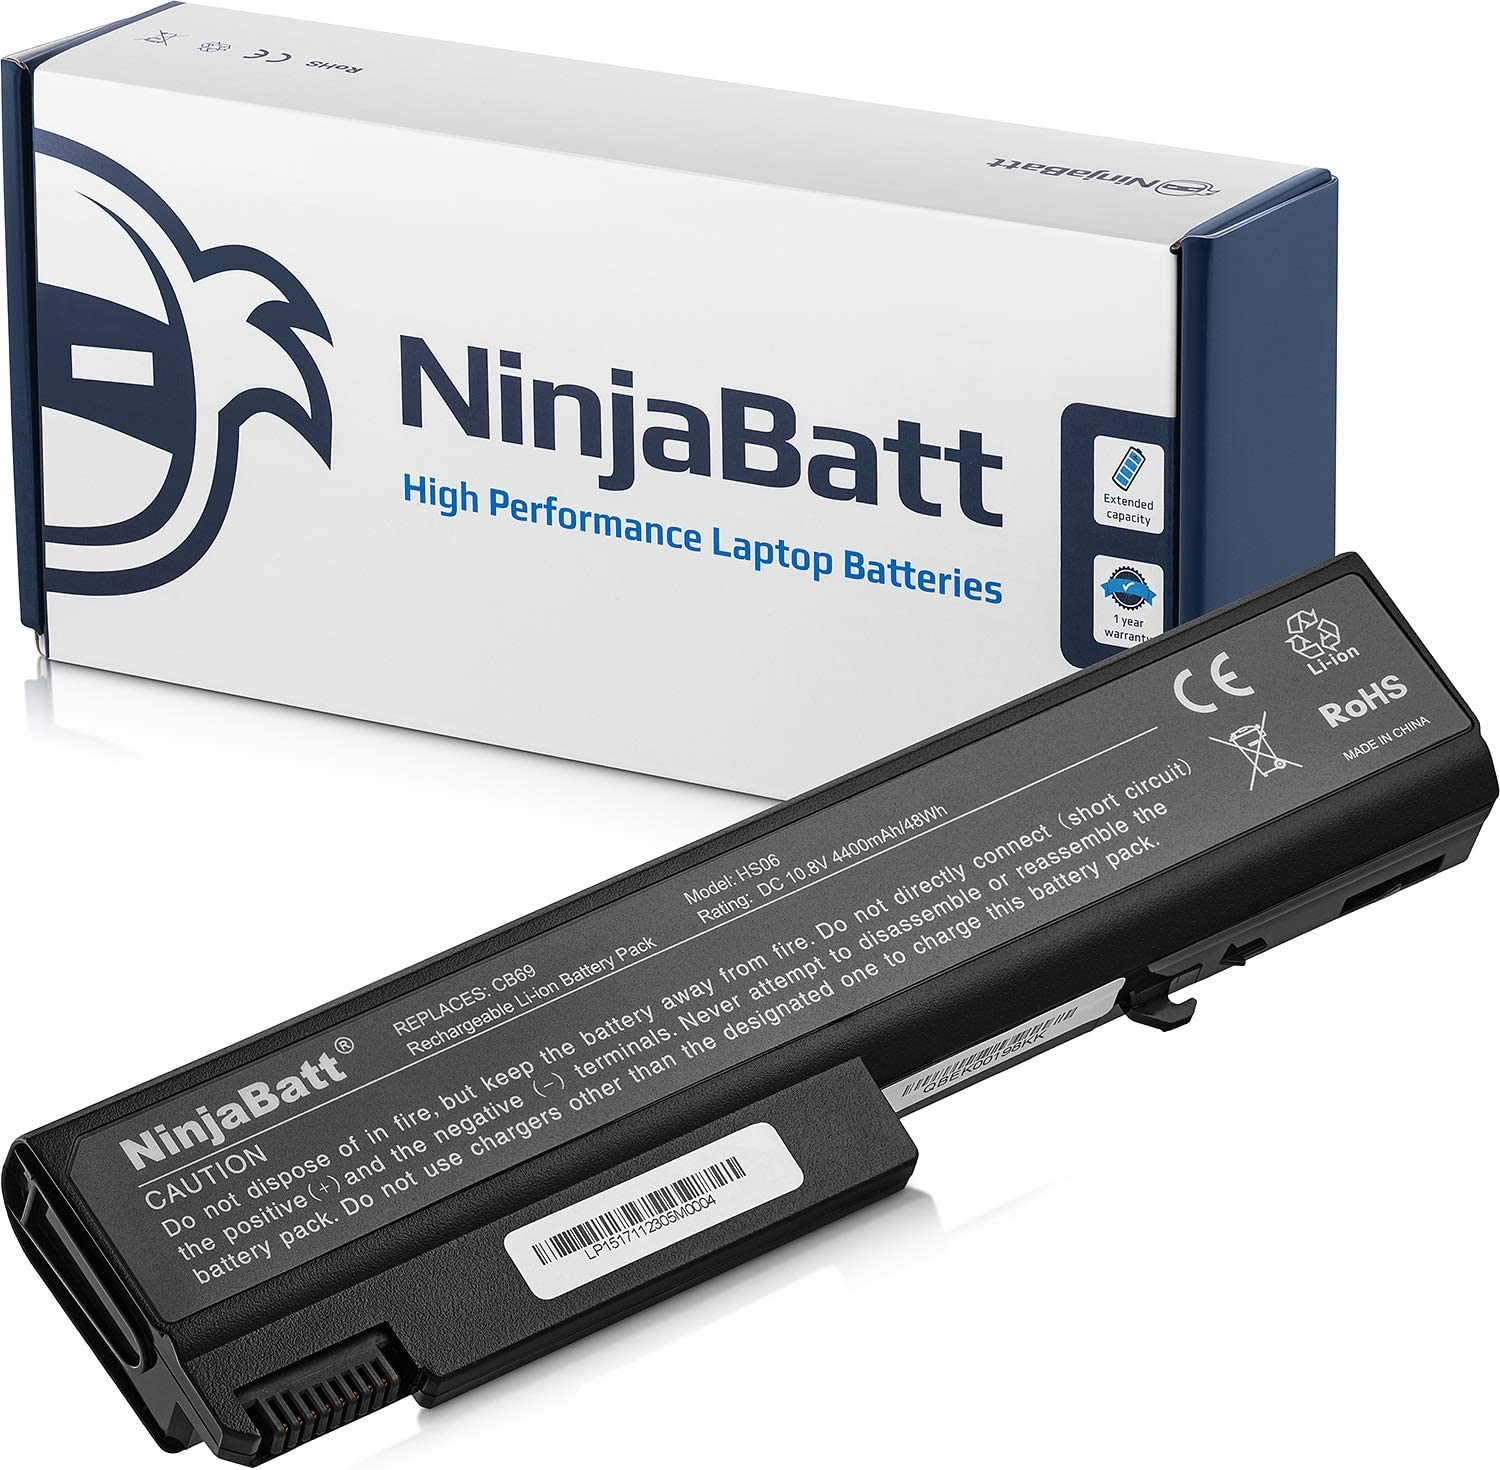 NinjaBatt Laptop Battery for HP EliteBook 6930P 8440P 8440W ProBook 6440B 6445B 6450B 6455B 6540B 6545B 6550B 6555B Compaq 6730B 6530B 6535B 6735B 482962-001 482962-001 TD06 TD09 - [6 Cells/4400mAh]